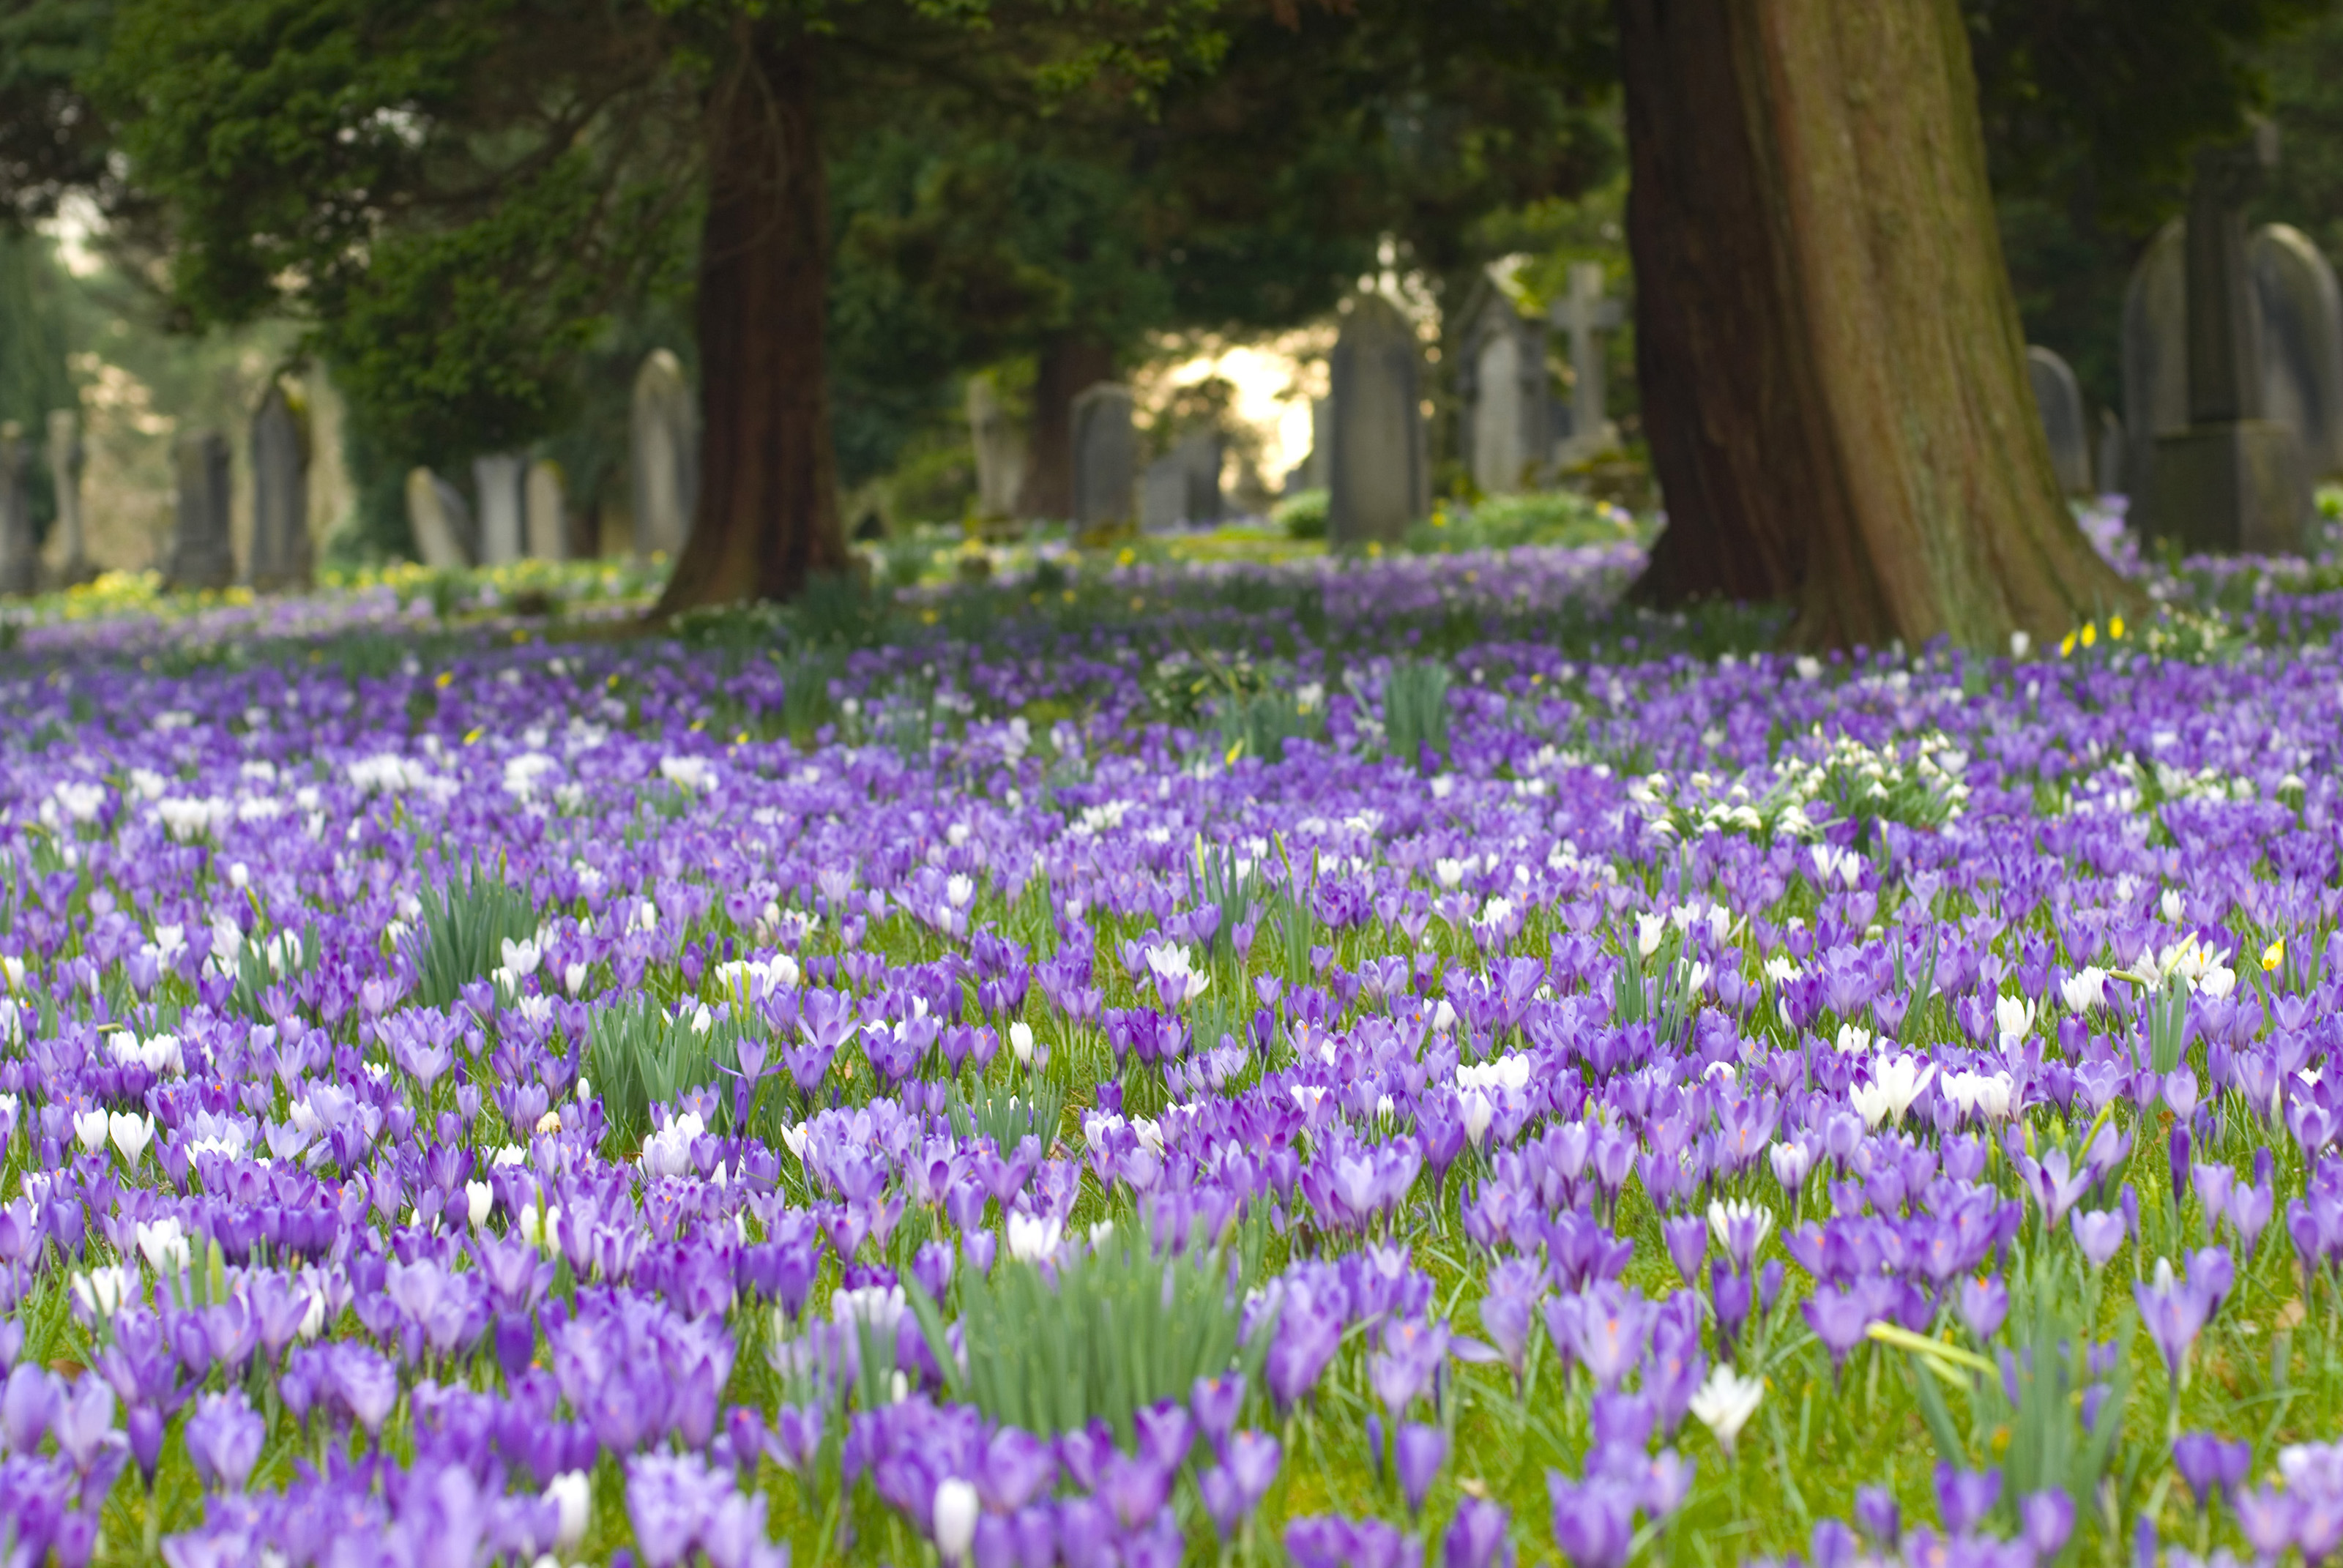 Wallpaper Hd Floral Free Stock Photo 7906 Spring Crocus In A Churchyard